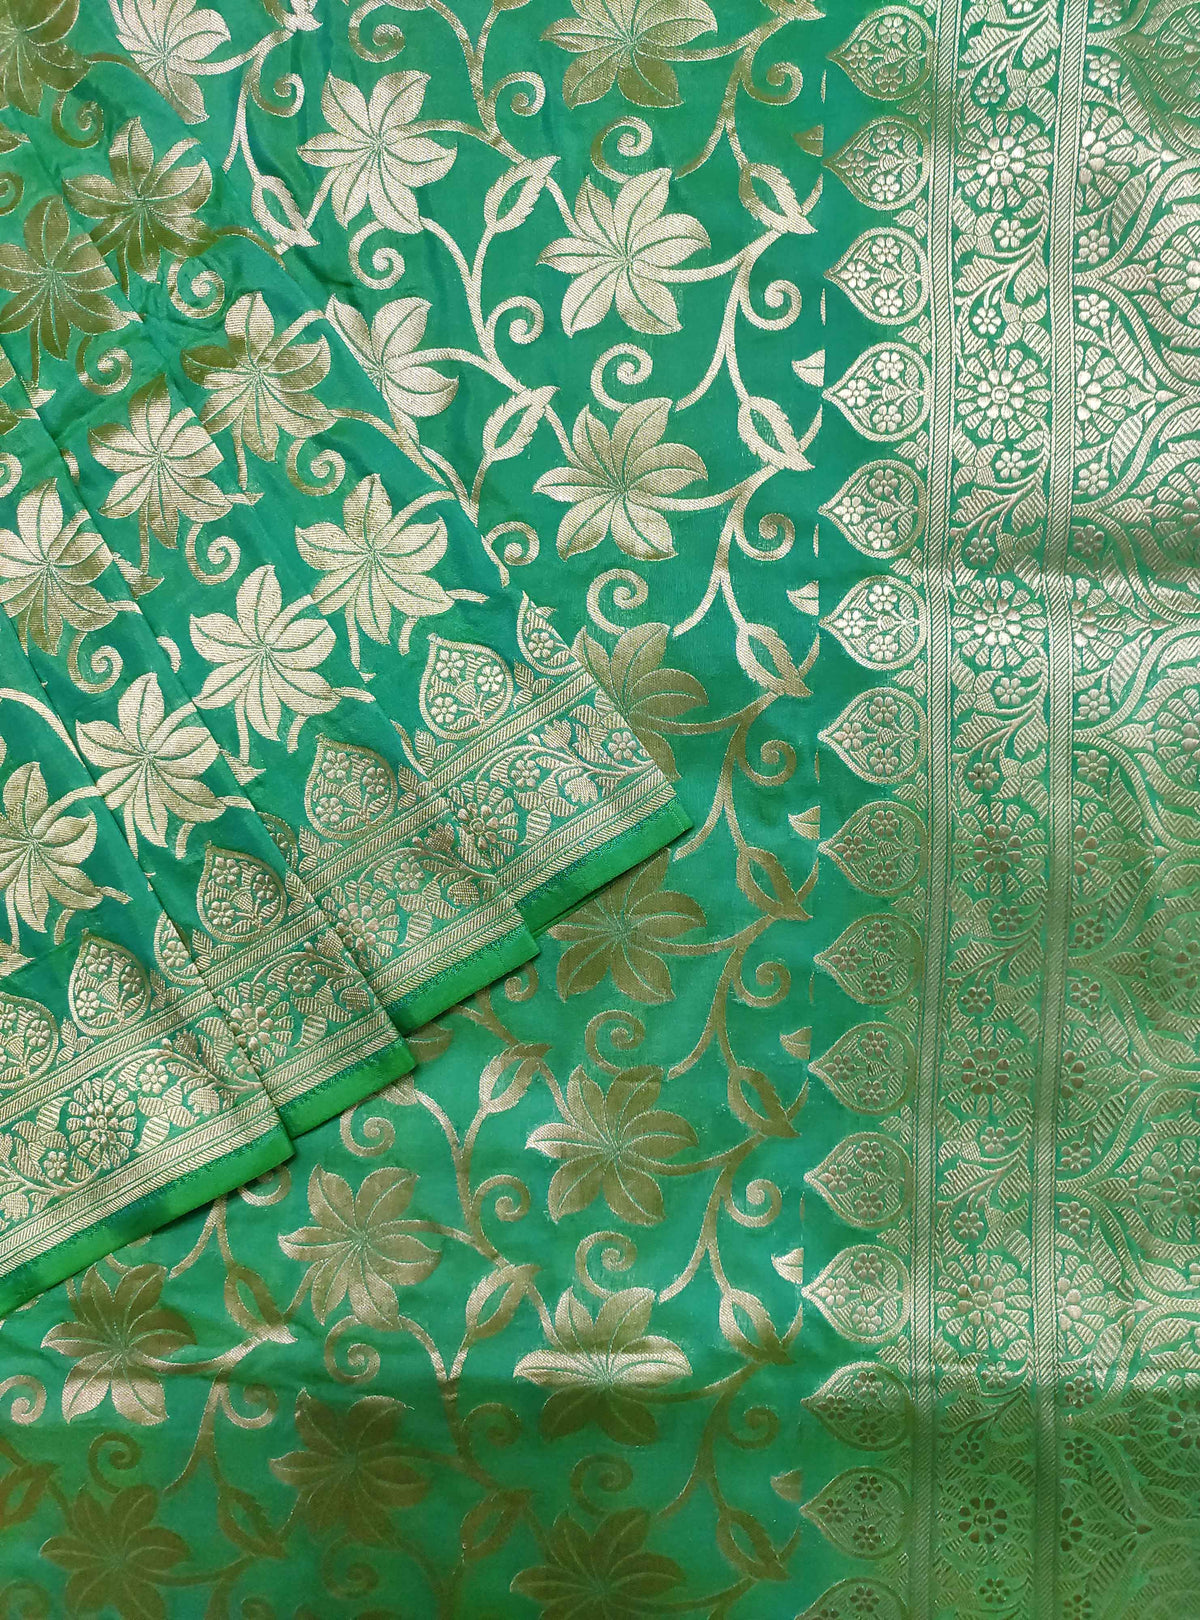 Green Katan silk Handloom Banarasi saree with flower jaal (2) Close up